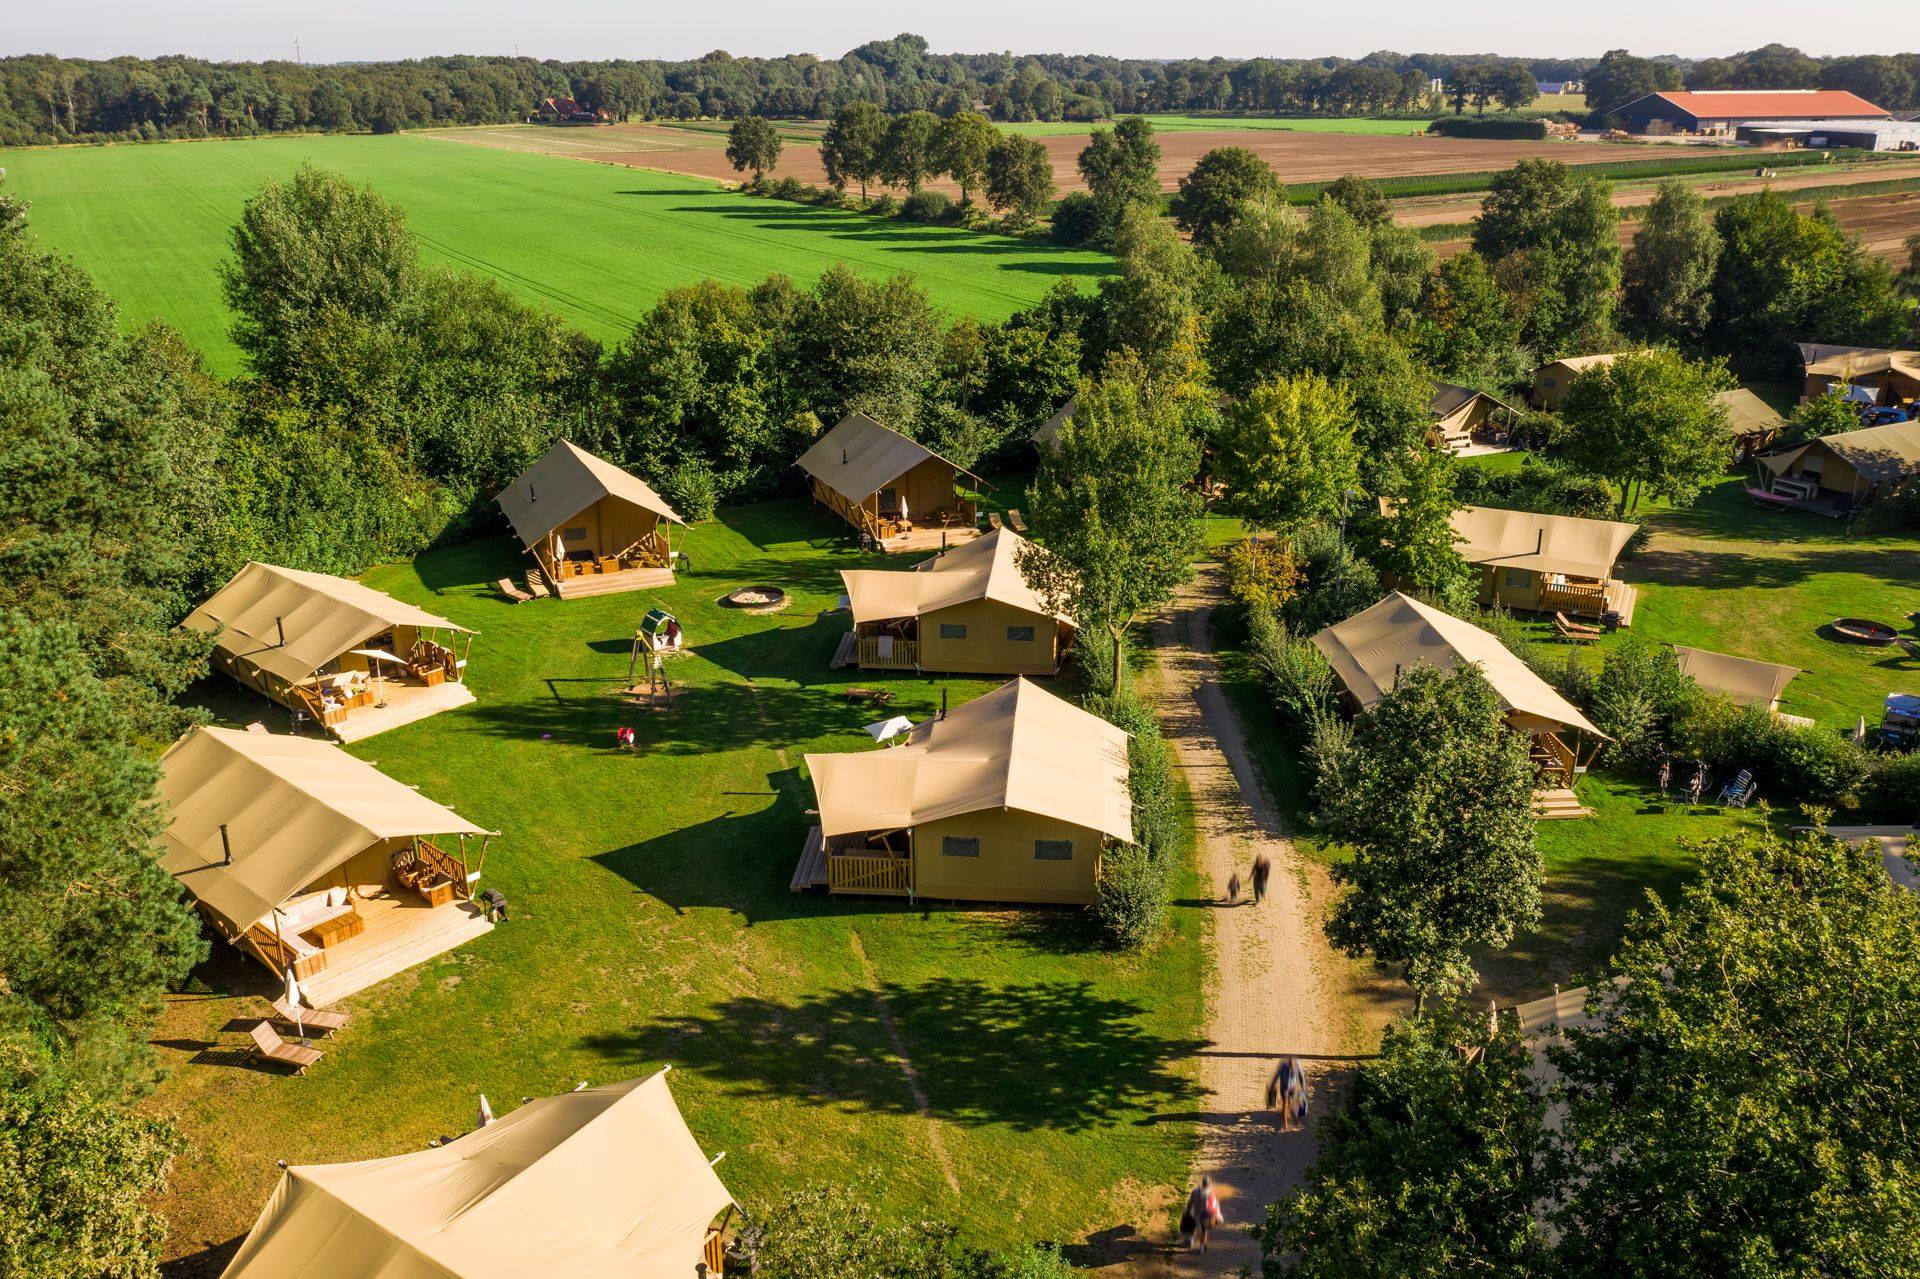 Vacanze col Cuore welcomes Dutch tourist in their own country   New Glamping